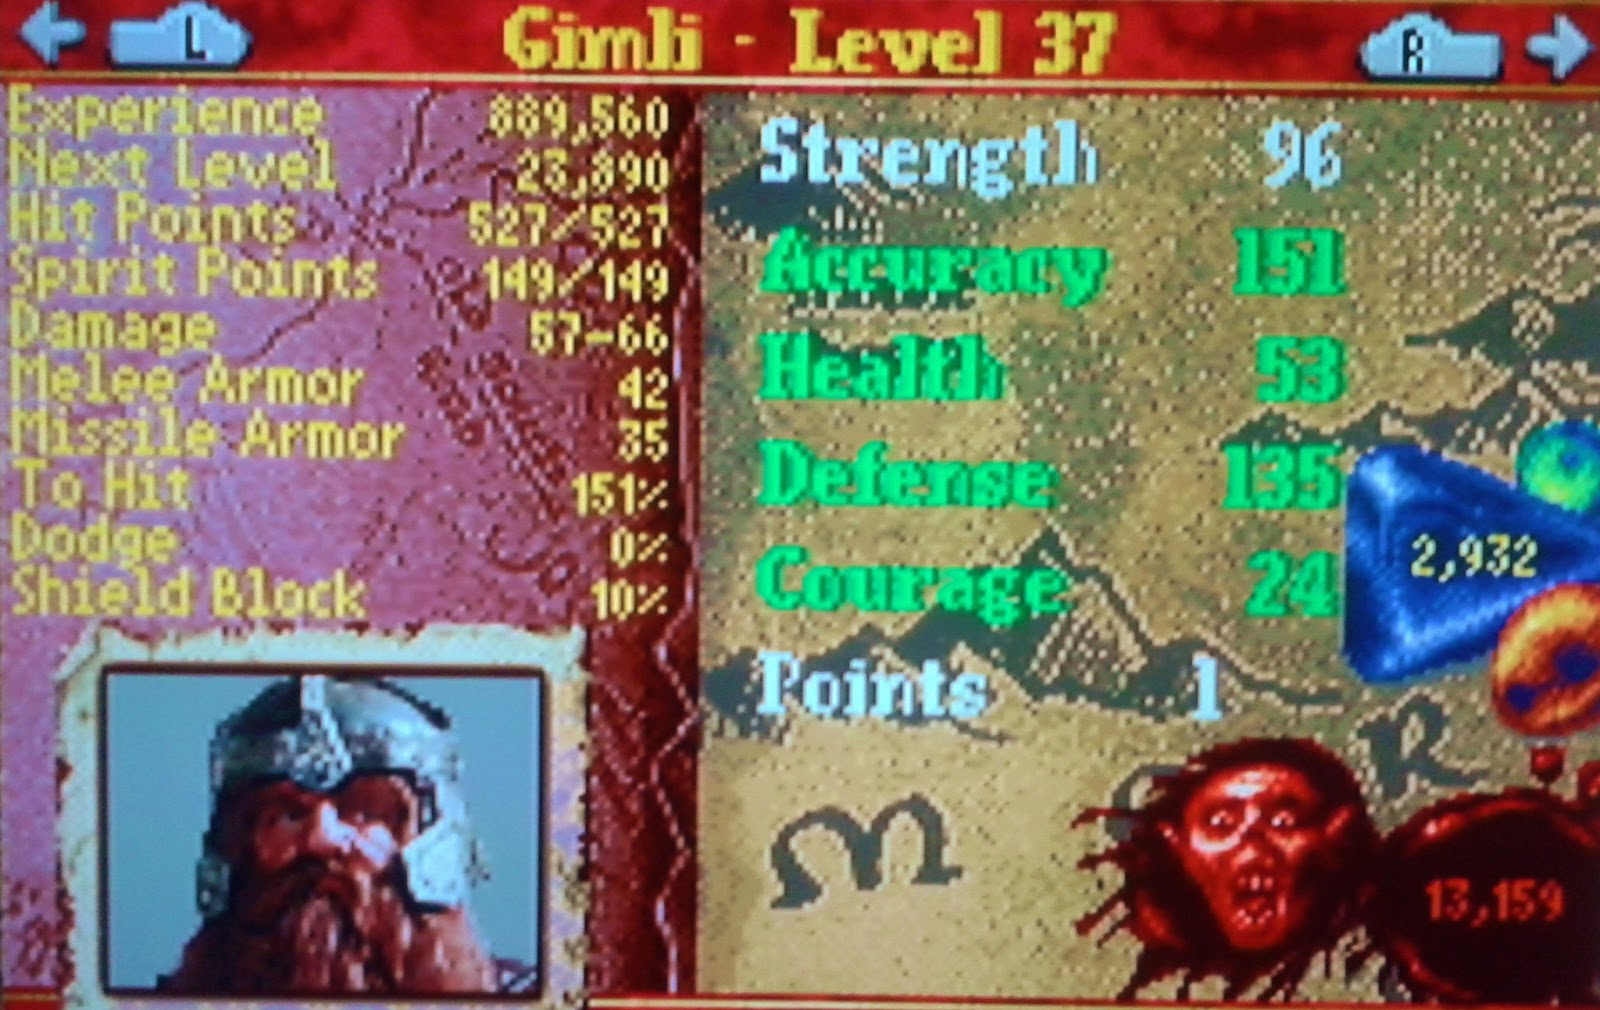 Status screen from Lords of the Rings on Gameboy Advance. It shows the attributes of Gimli.